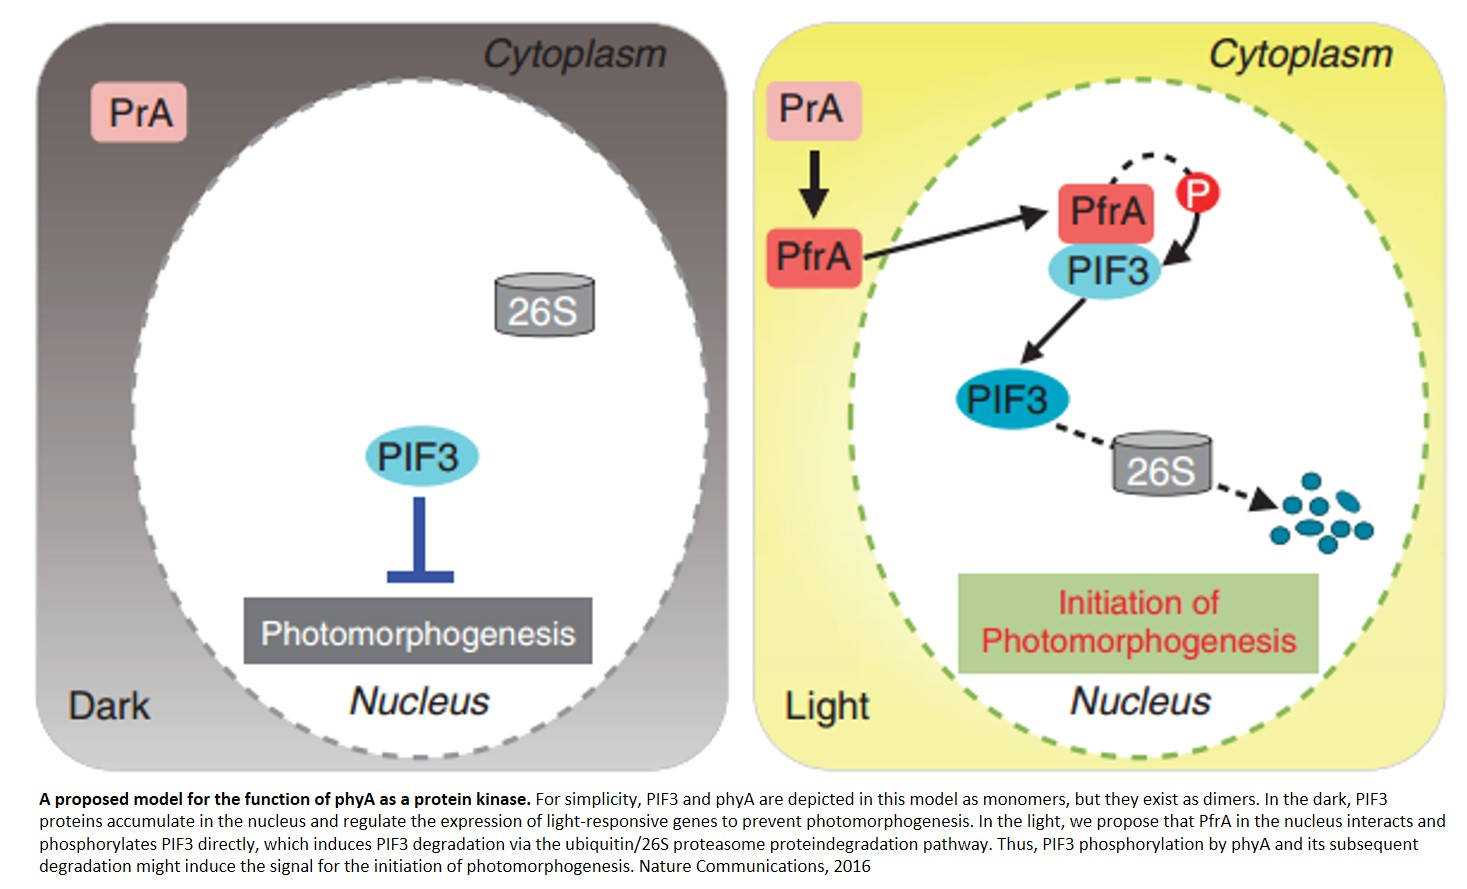 Phytochrome functions as a protein kinase in plant light signalling